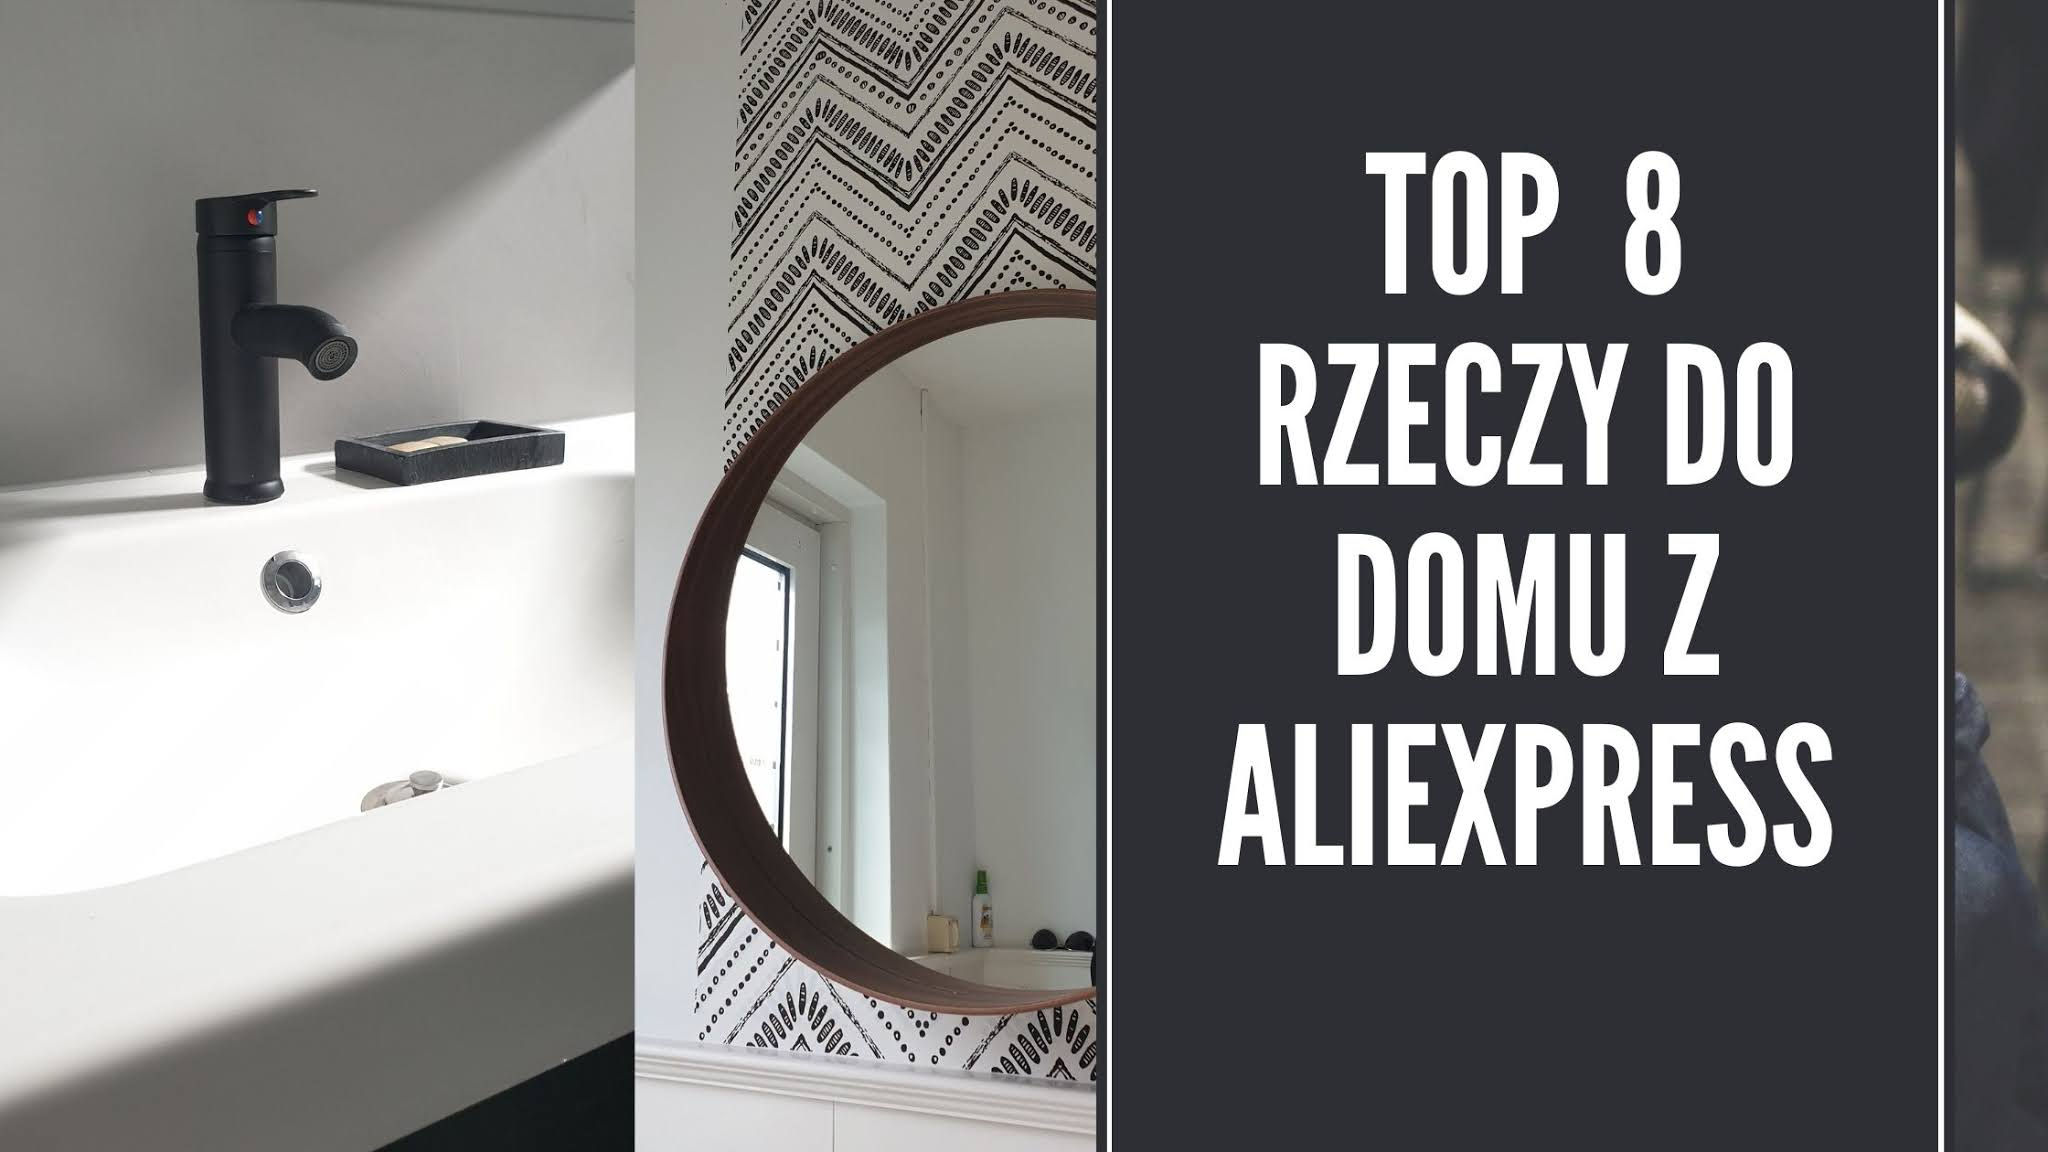 top 8 rzeczy do domu z aliexpress